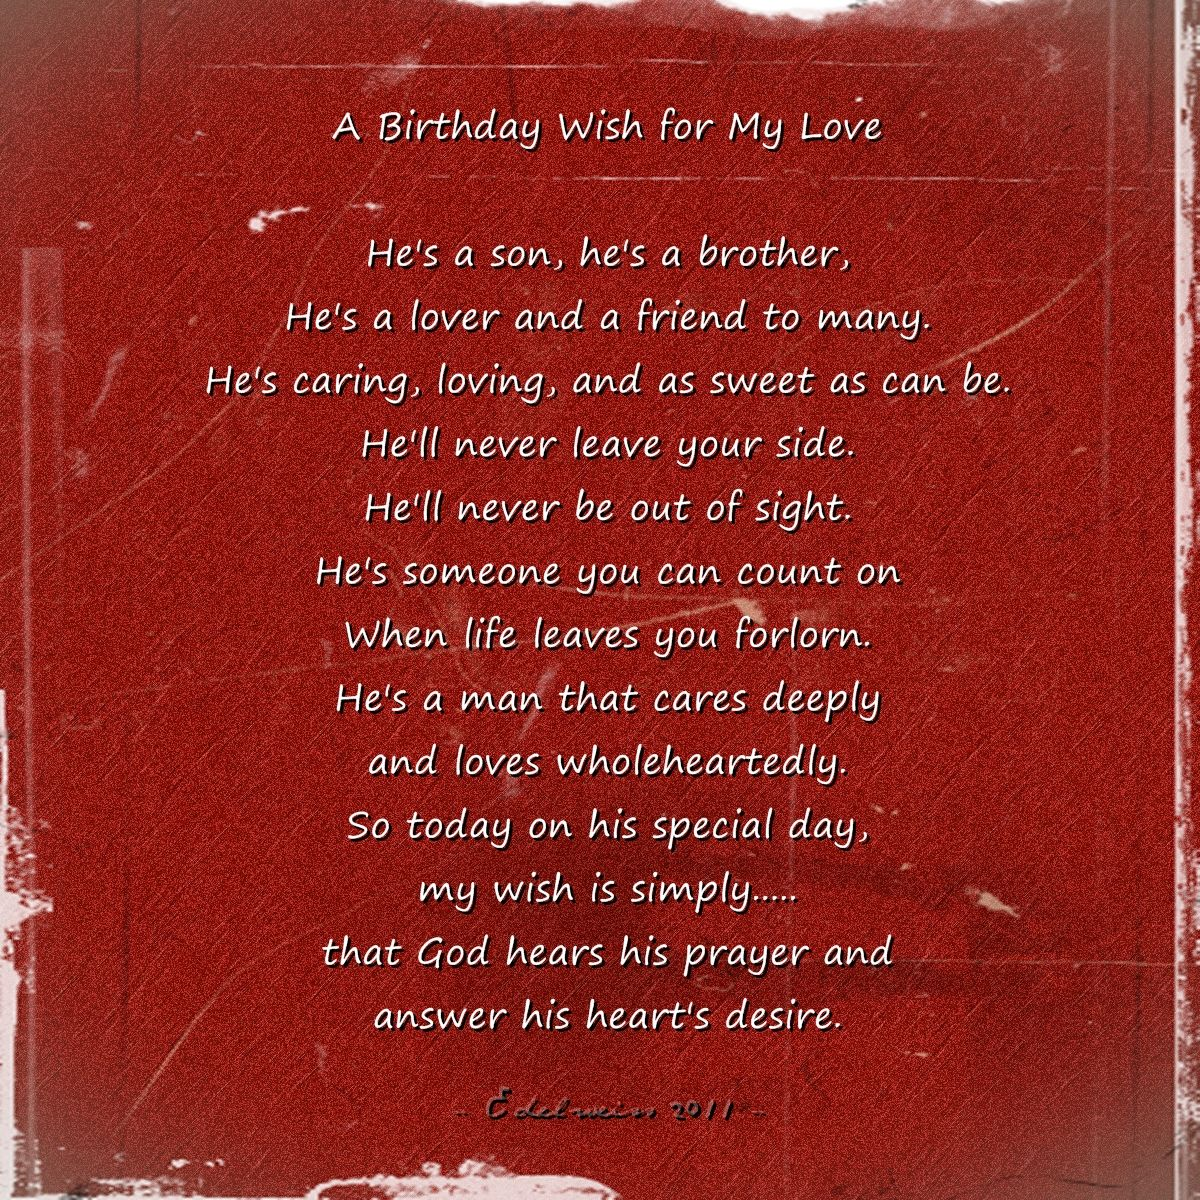 Love Quotes For My Son Love Quotes For A Son On His Birthday Happy Birthday To My Son In